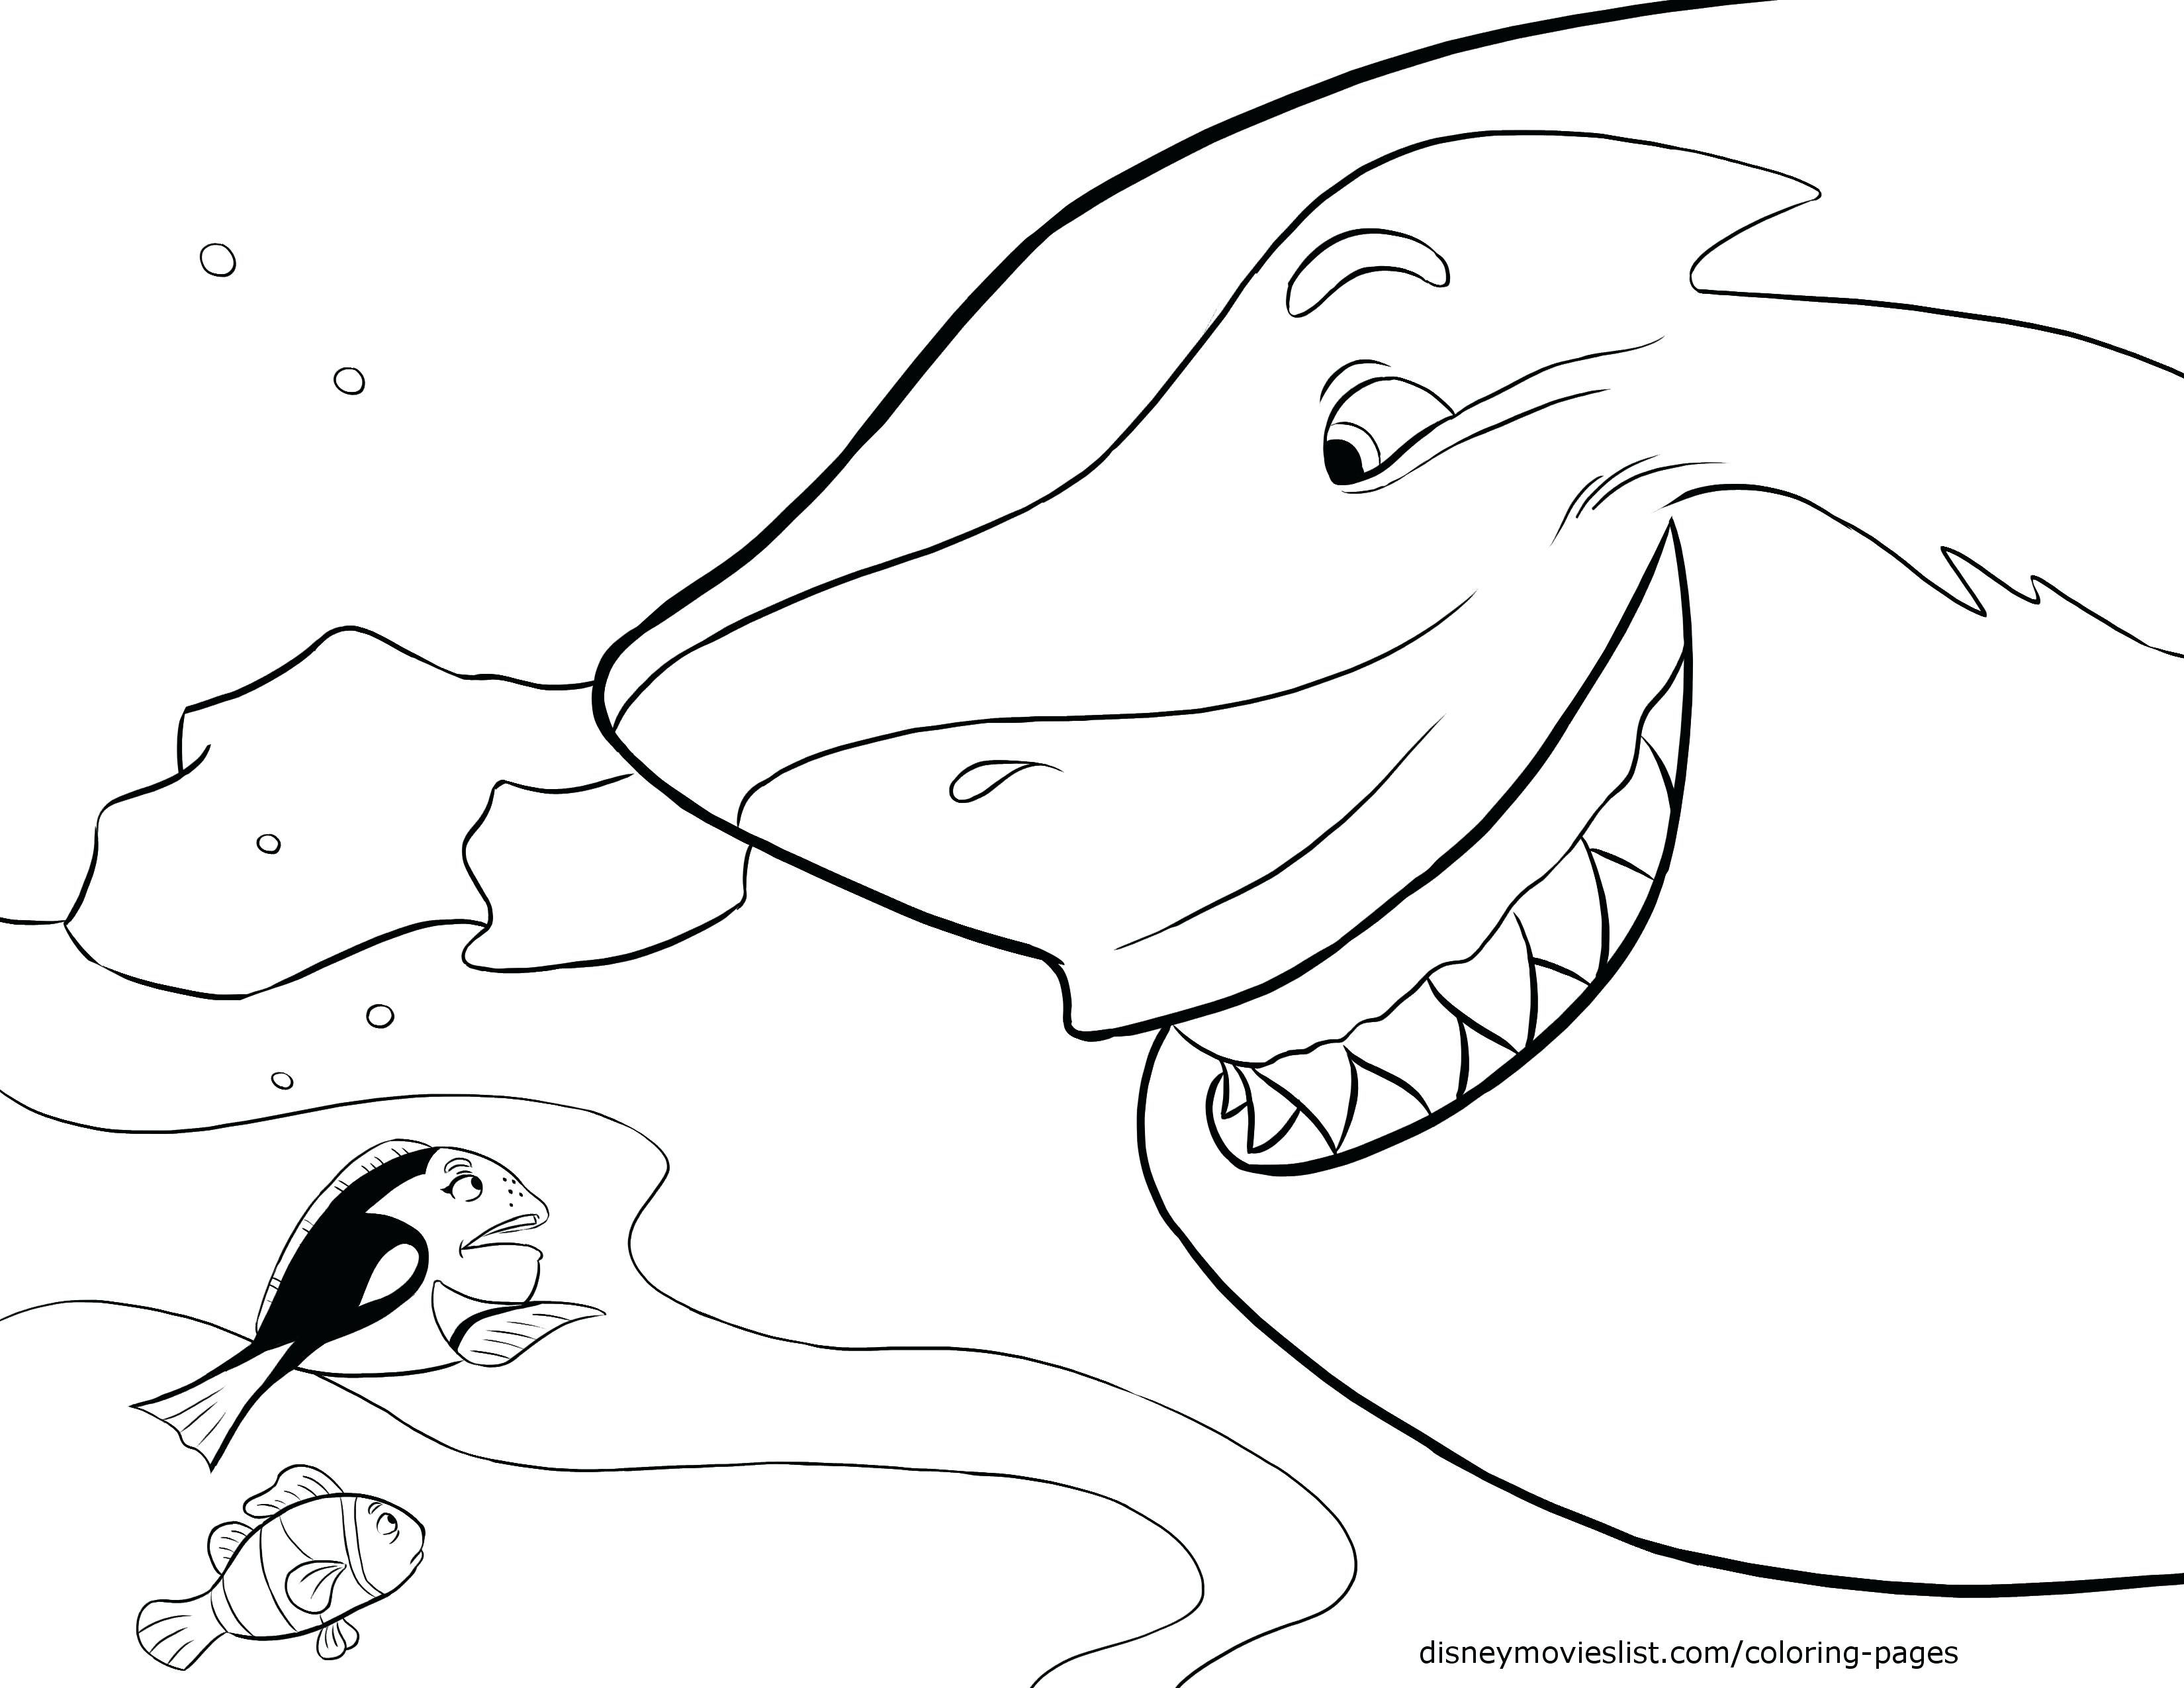 3300x2550 Pin Drawn Shark Coloring Page Pages Sharks And Dolphins Sharkboy